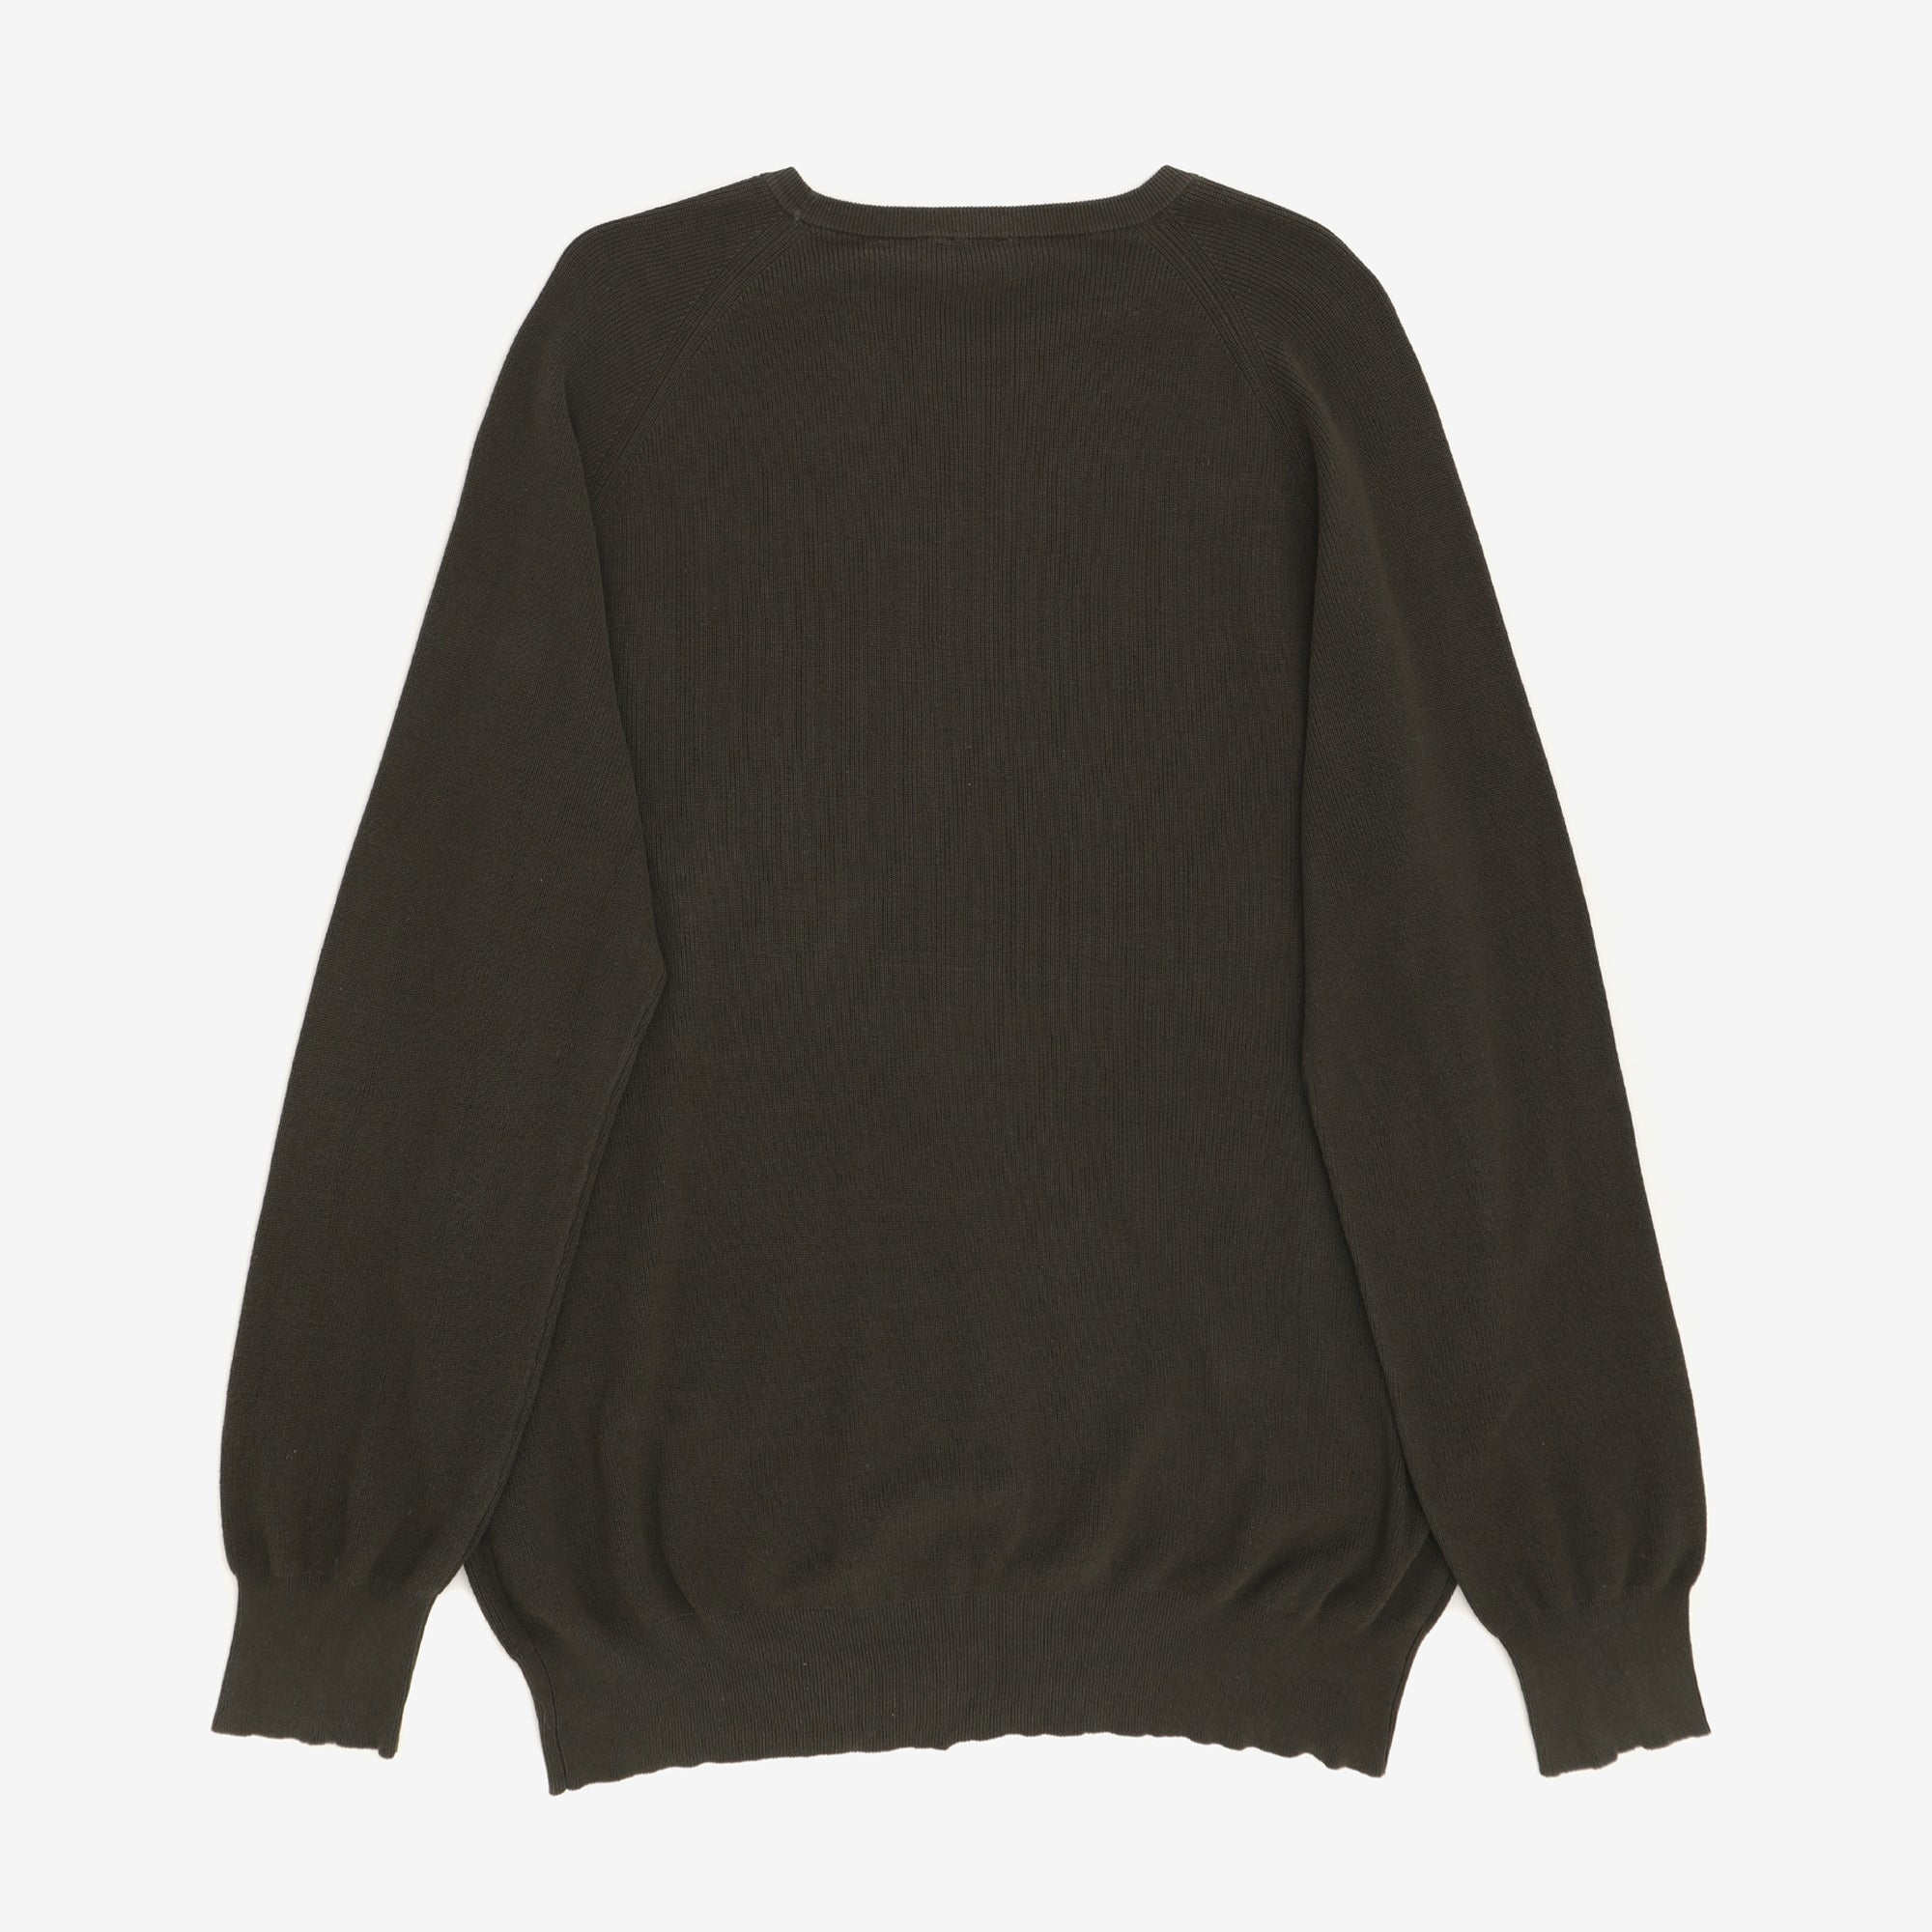 Crewneck Knitted Sweatshirt